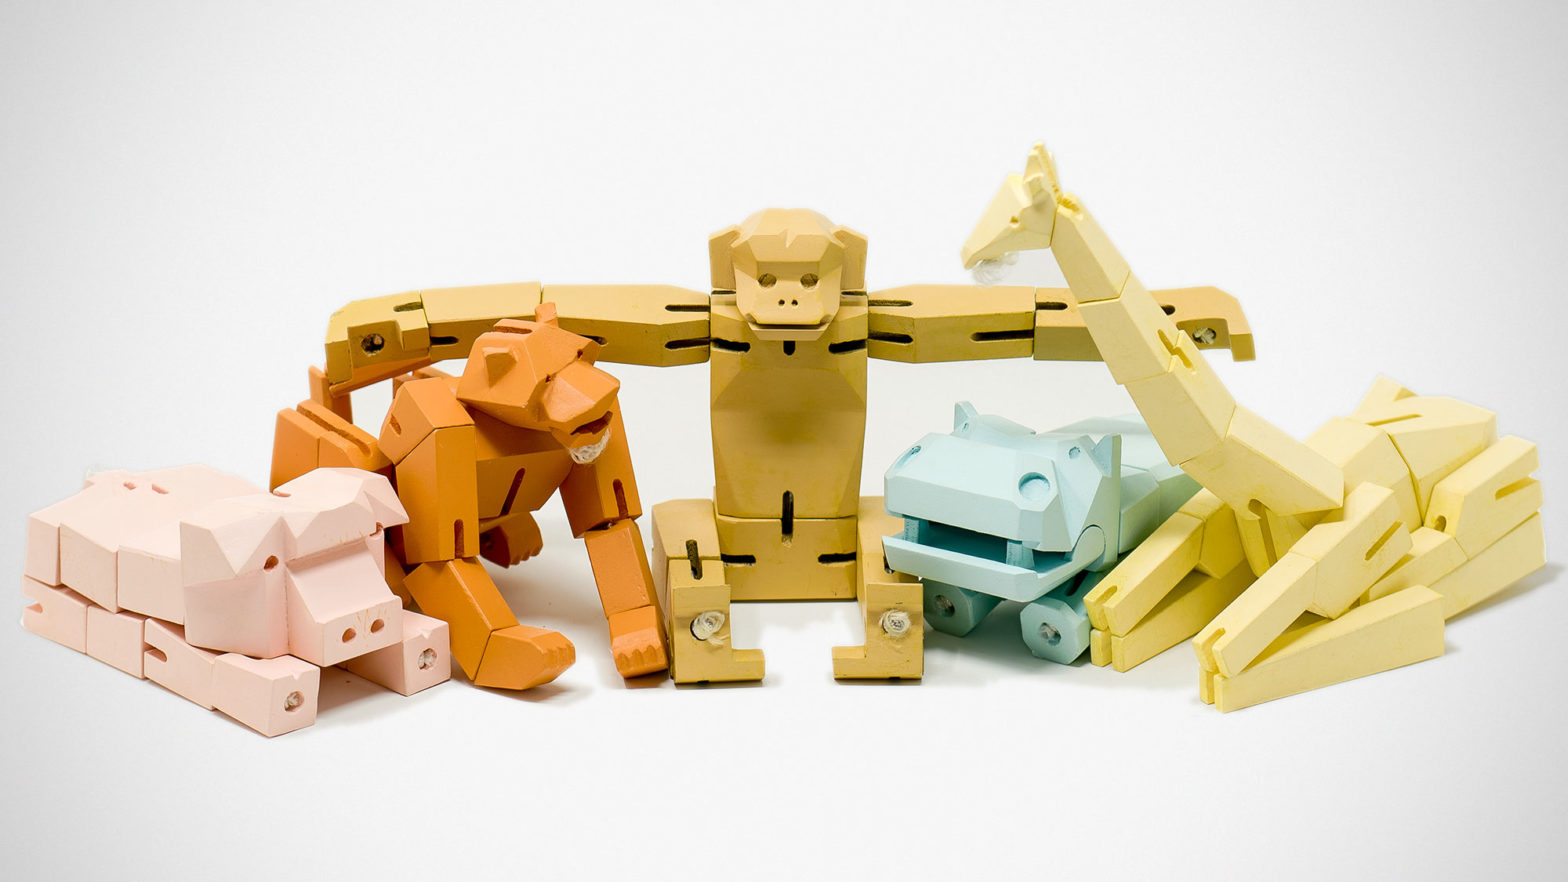 MoFU Transformable Design Toy by Yoshi Ito